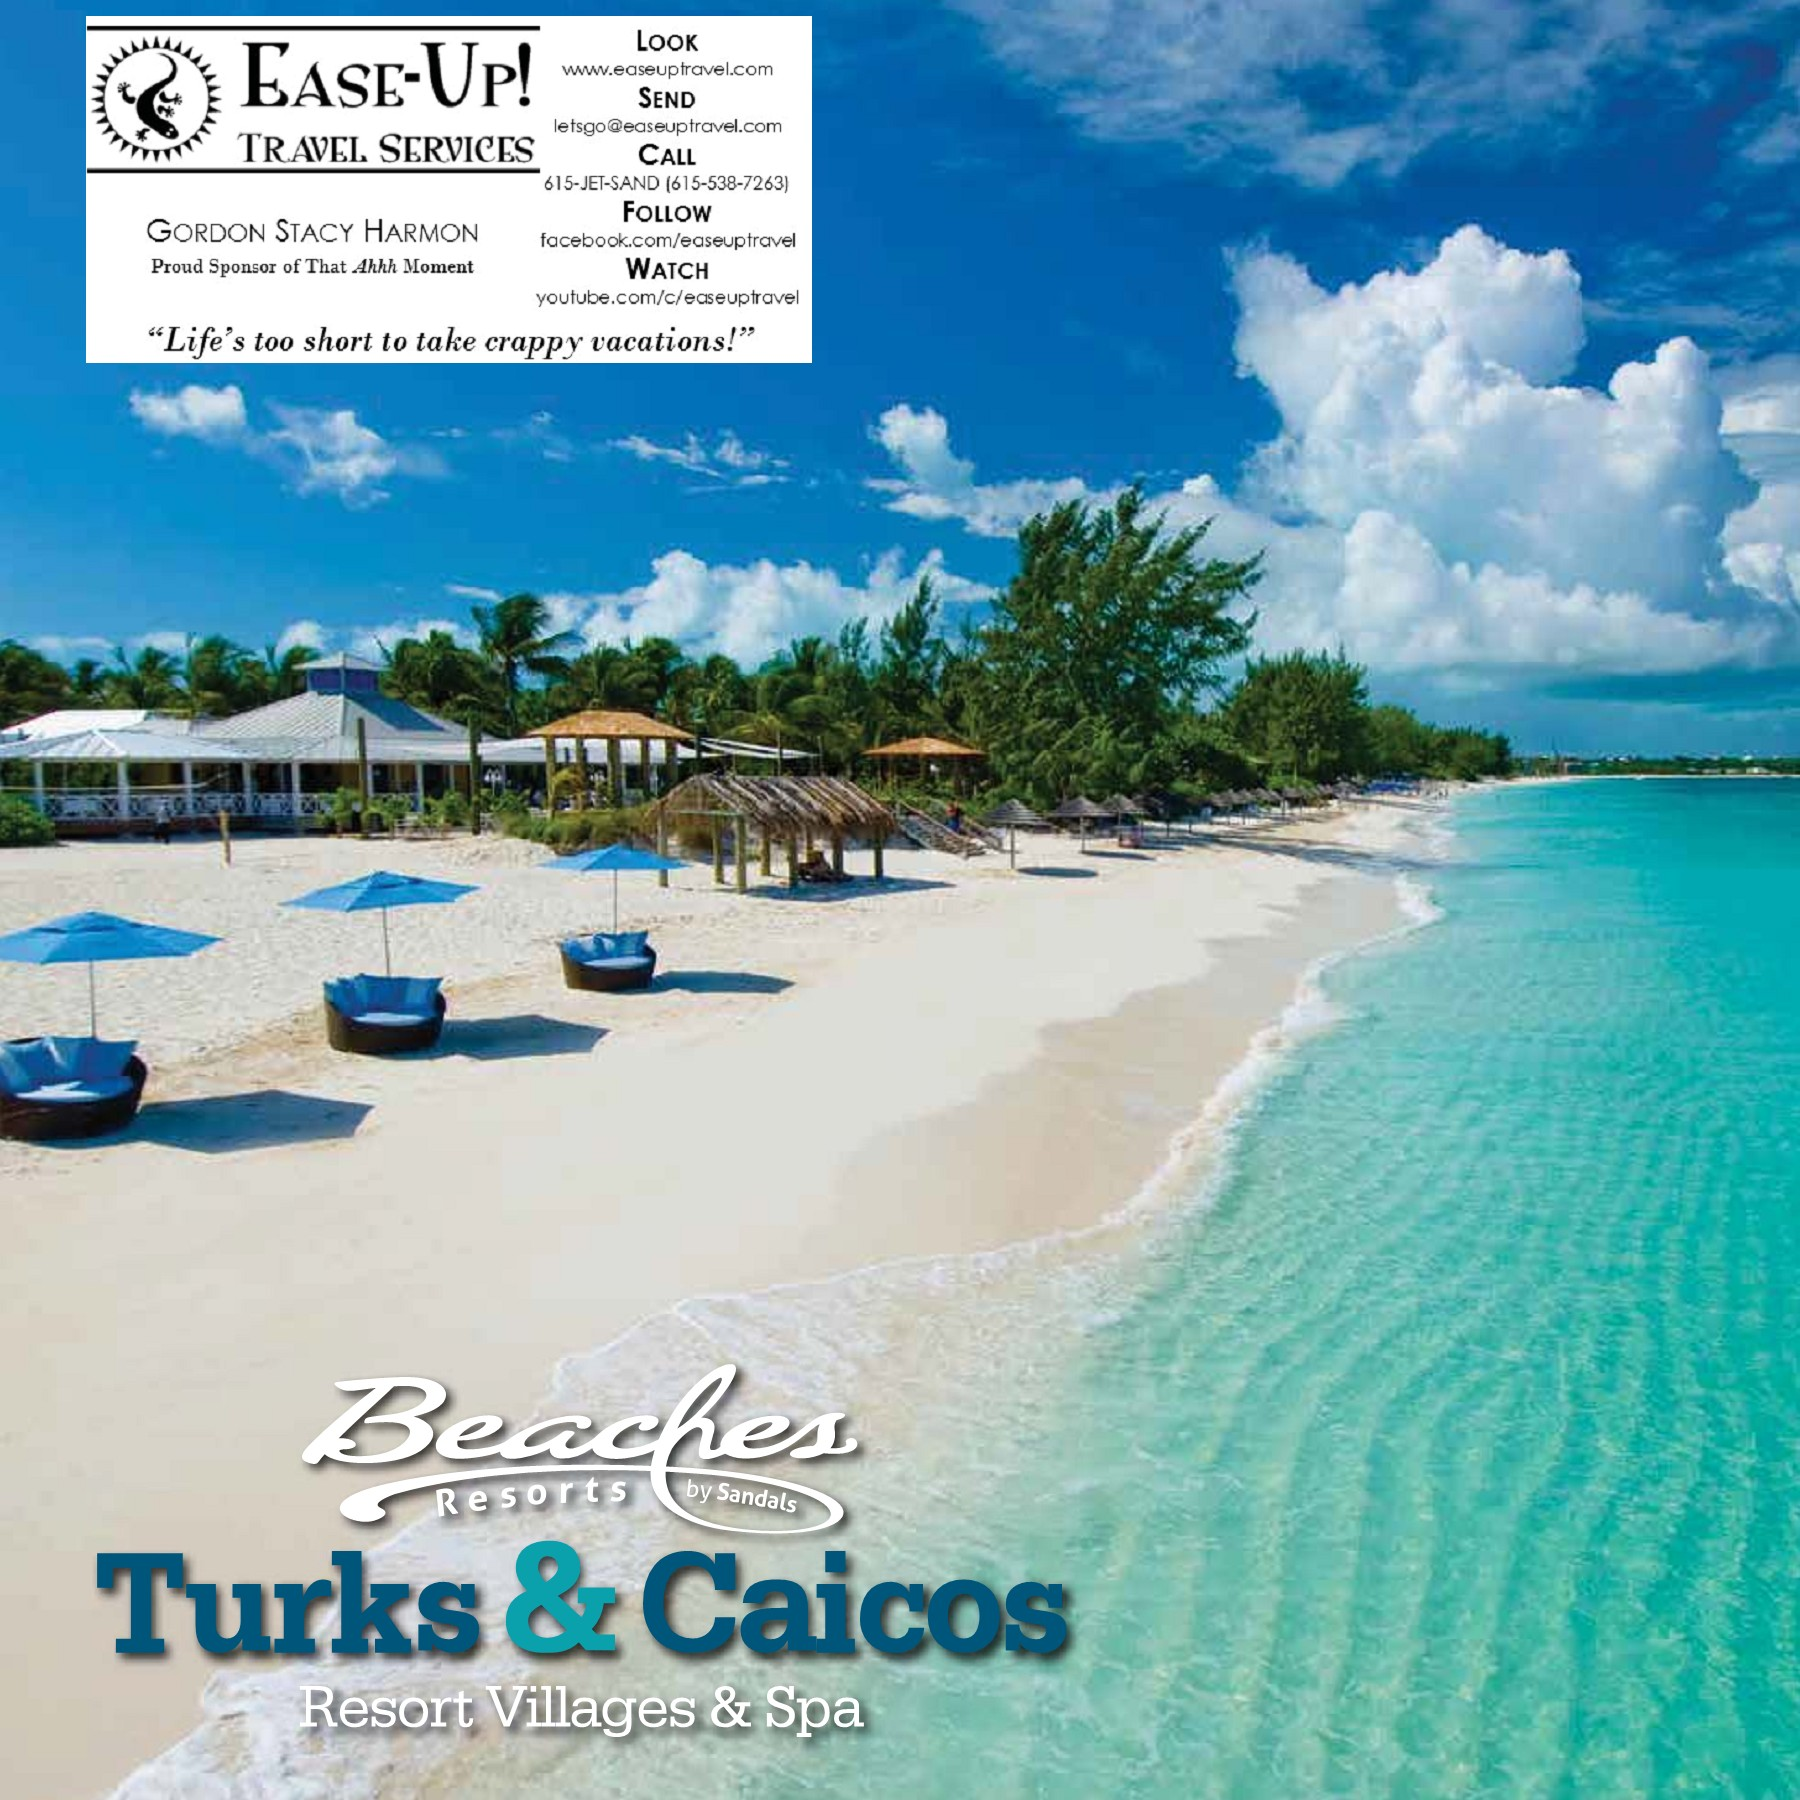 And Caicos Turks Turks And Beaches Beaches PiZOkXu